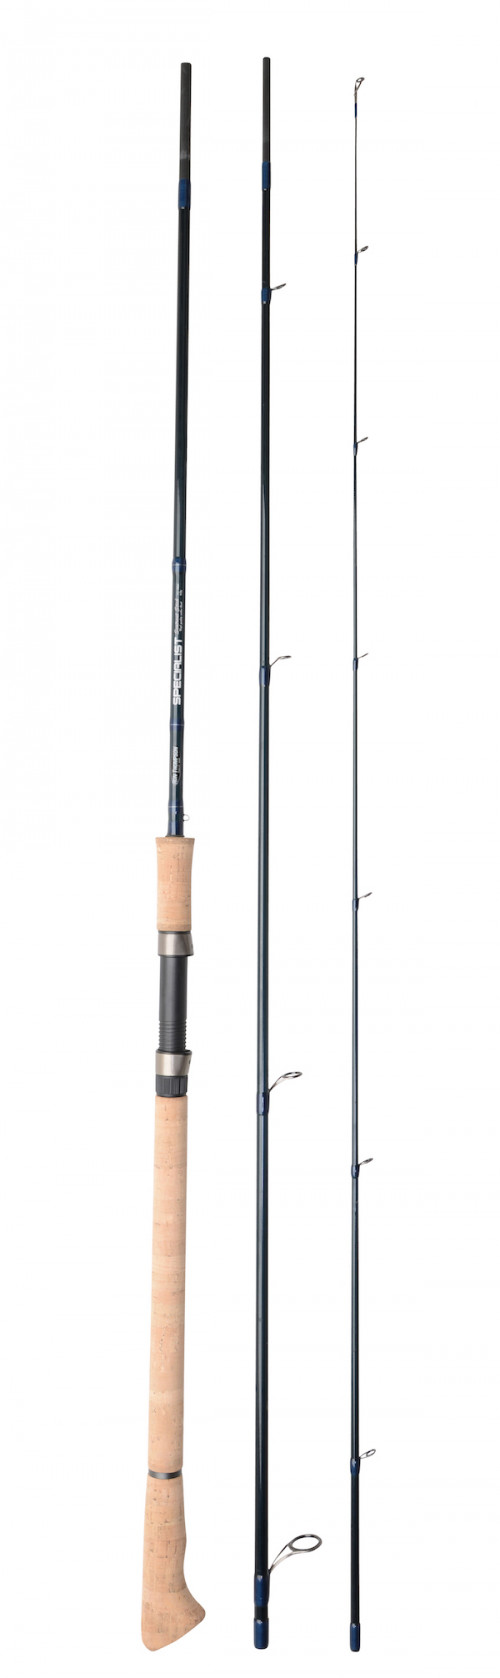 Ron Thompson Specialist Seatrout Stick 12'6'' 9-21g